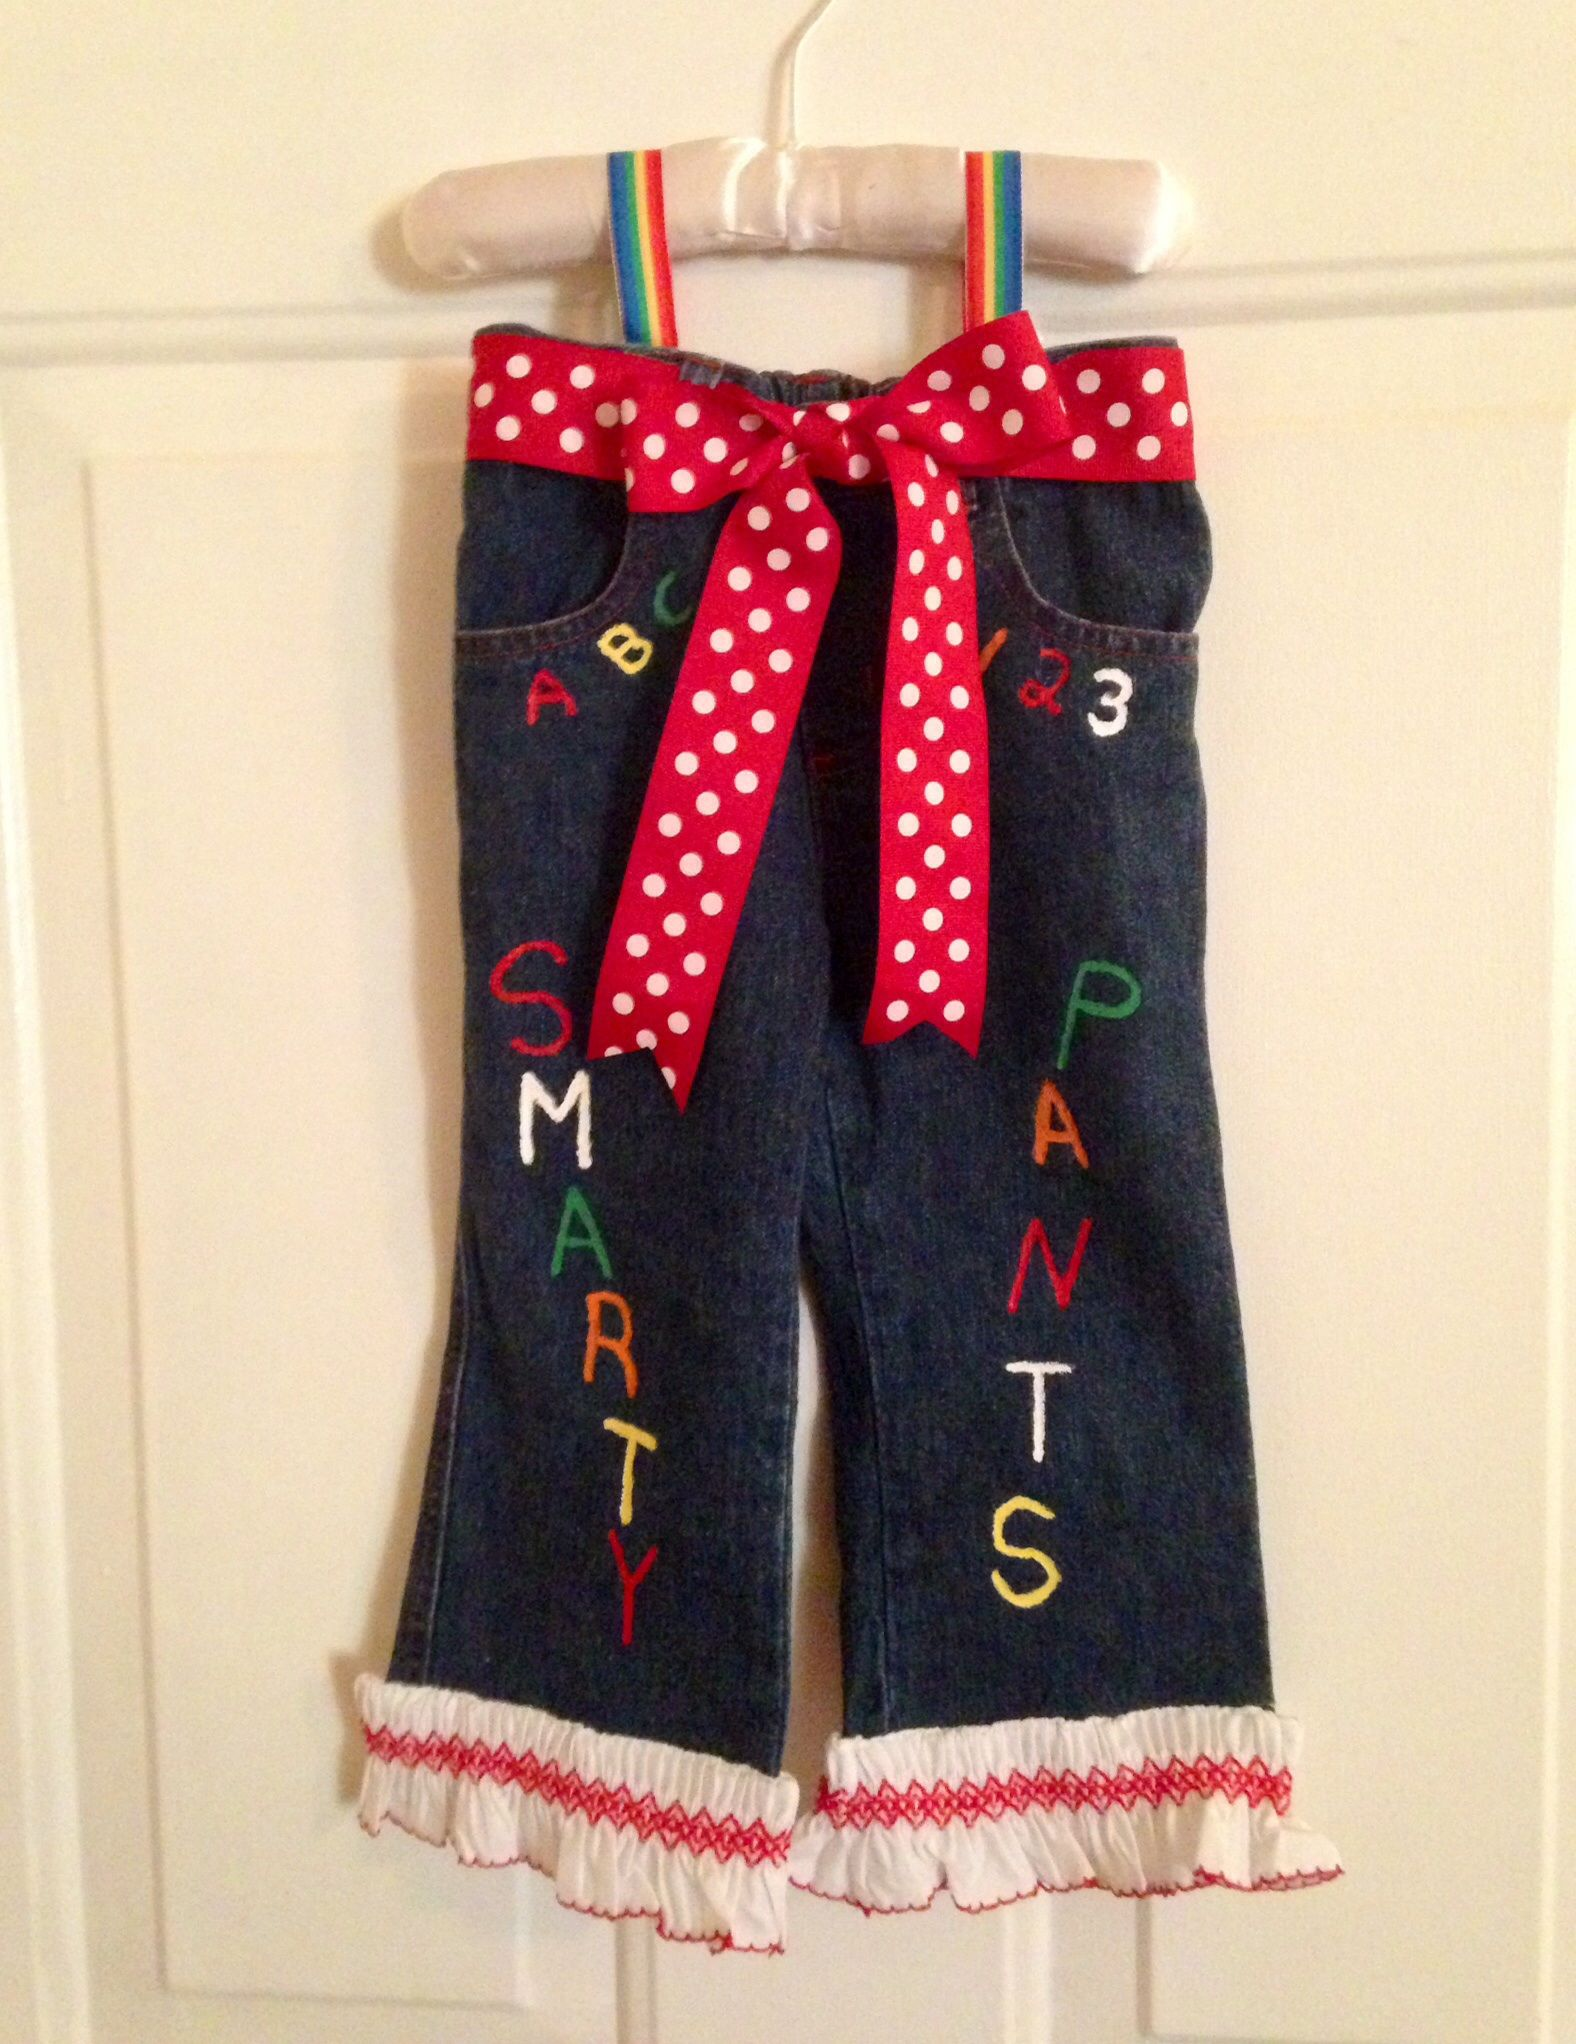 Even if you can't sew, use old pants, glue and fabric paint to create these adorable Smarty Pants.  I didn't have to purchase anything, made with supplies on hand.  These are sewn together, but could easily be glued or stitch witchery.